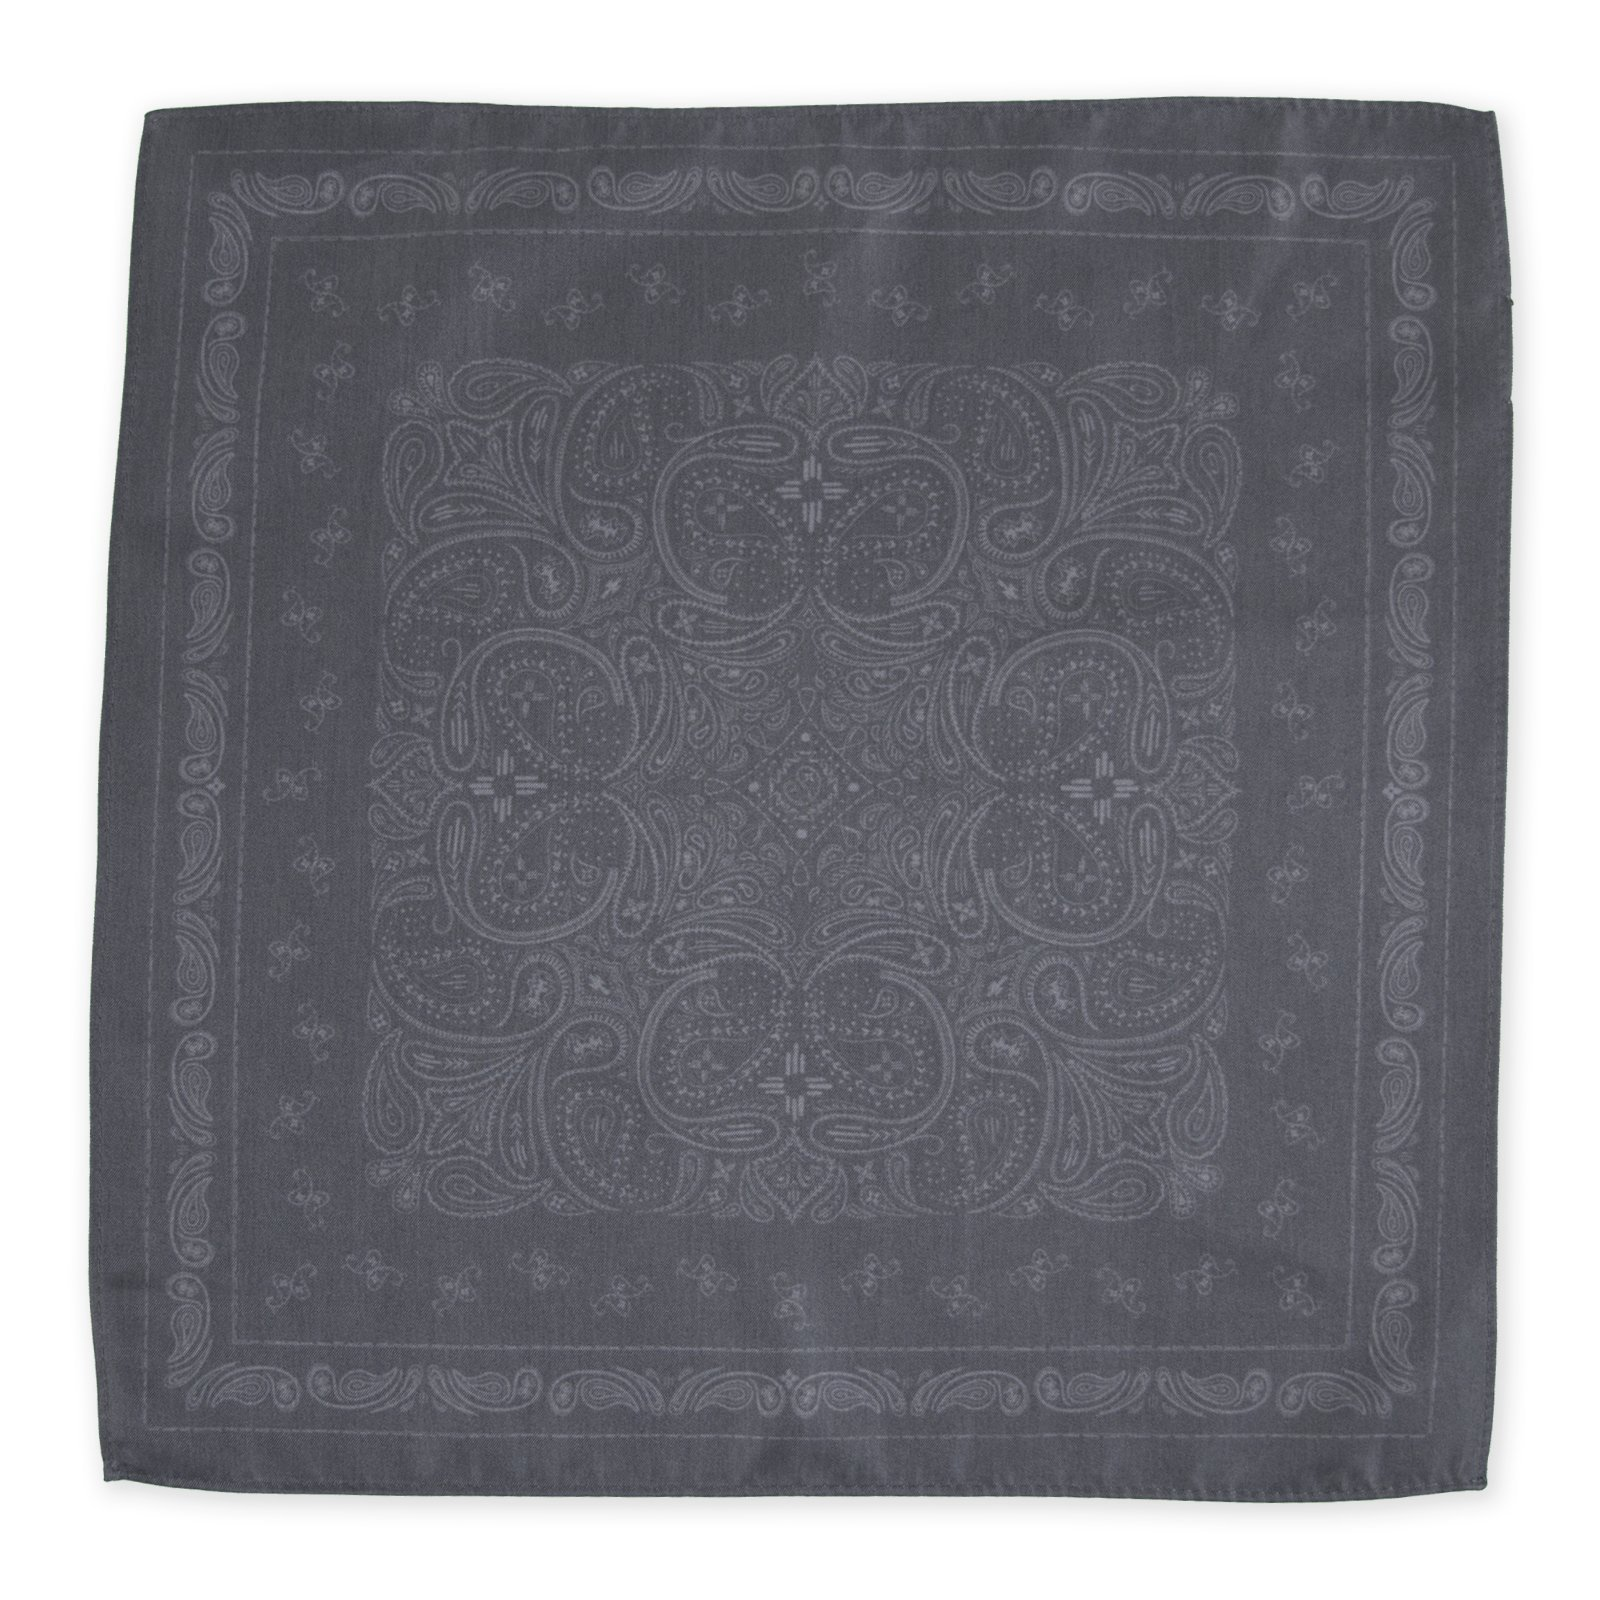 Declan 13.4 Inch Microfiber Pocket Square, Handkerchief, Cleaning Cloth (Brooks Gray) by Declan